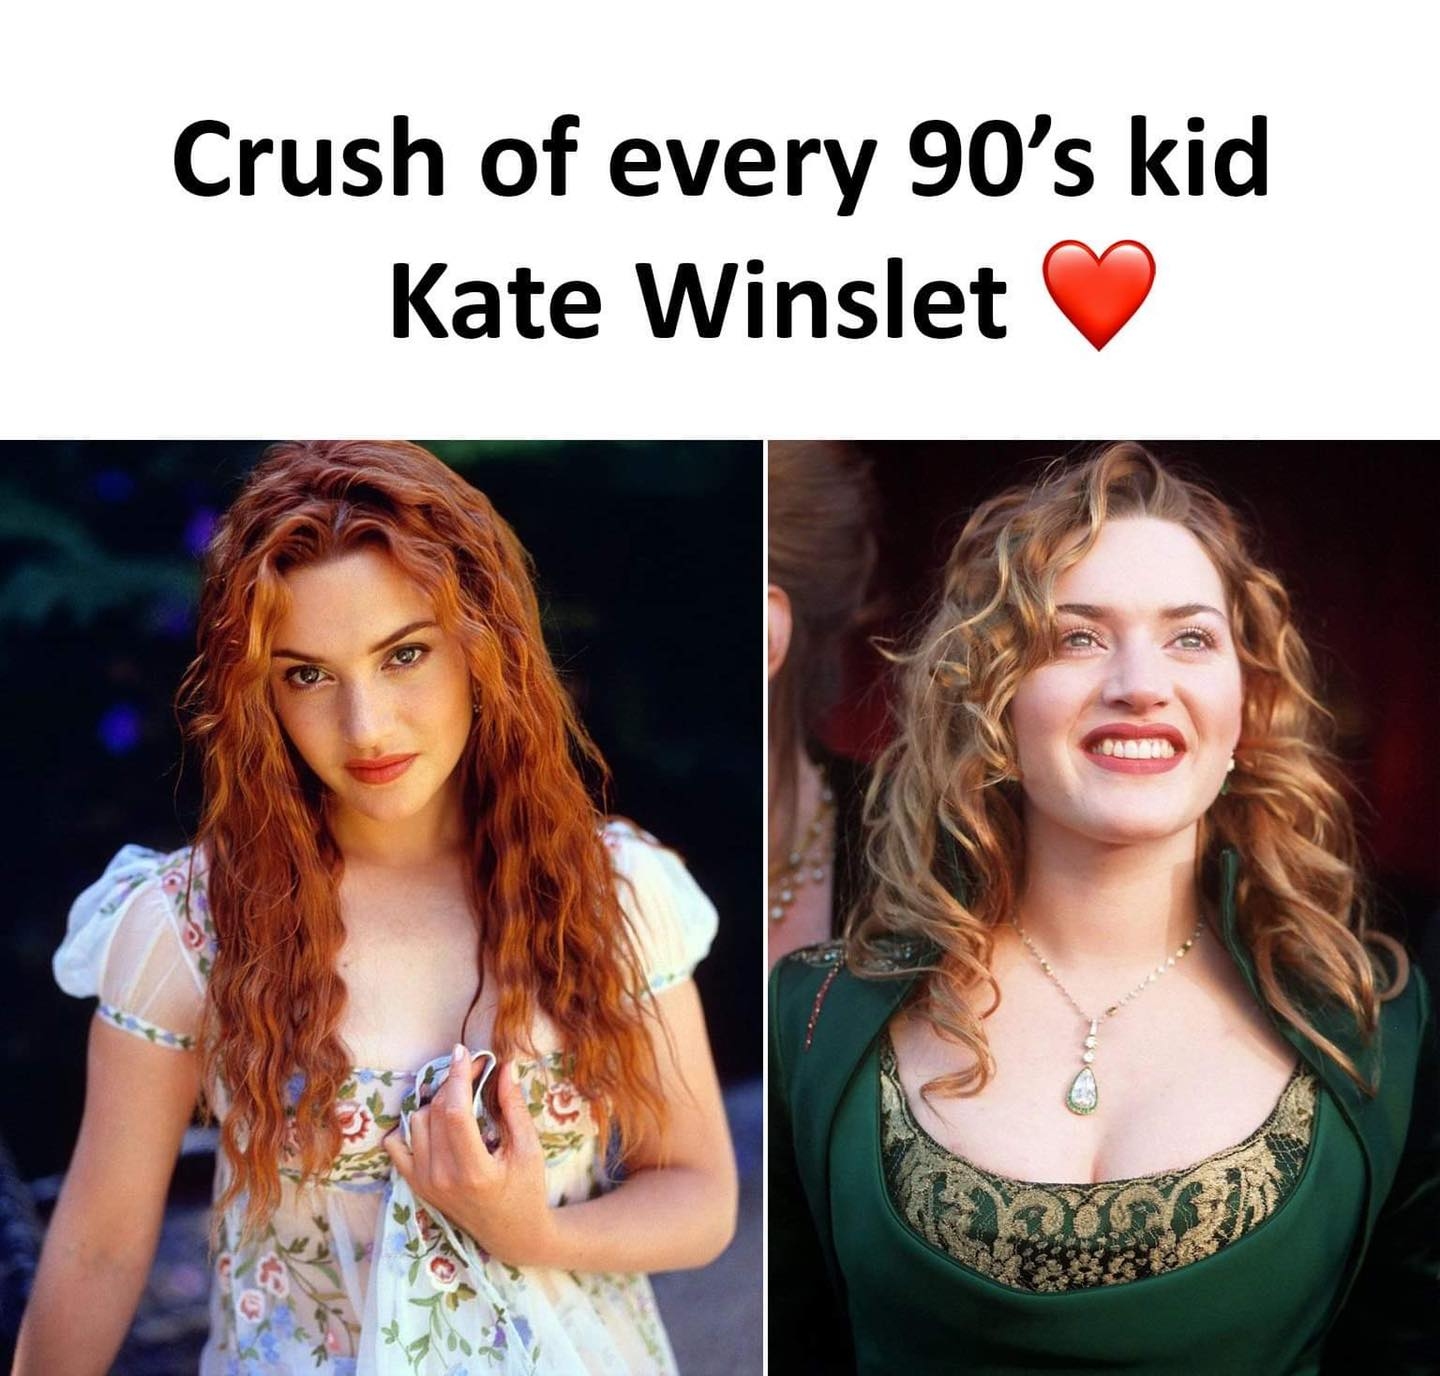 Crush of every 90's kid kate winslet